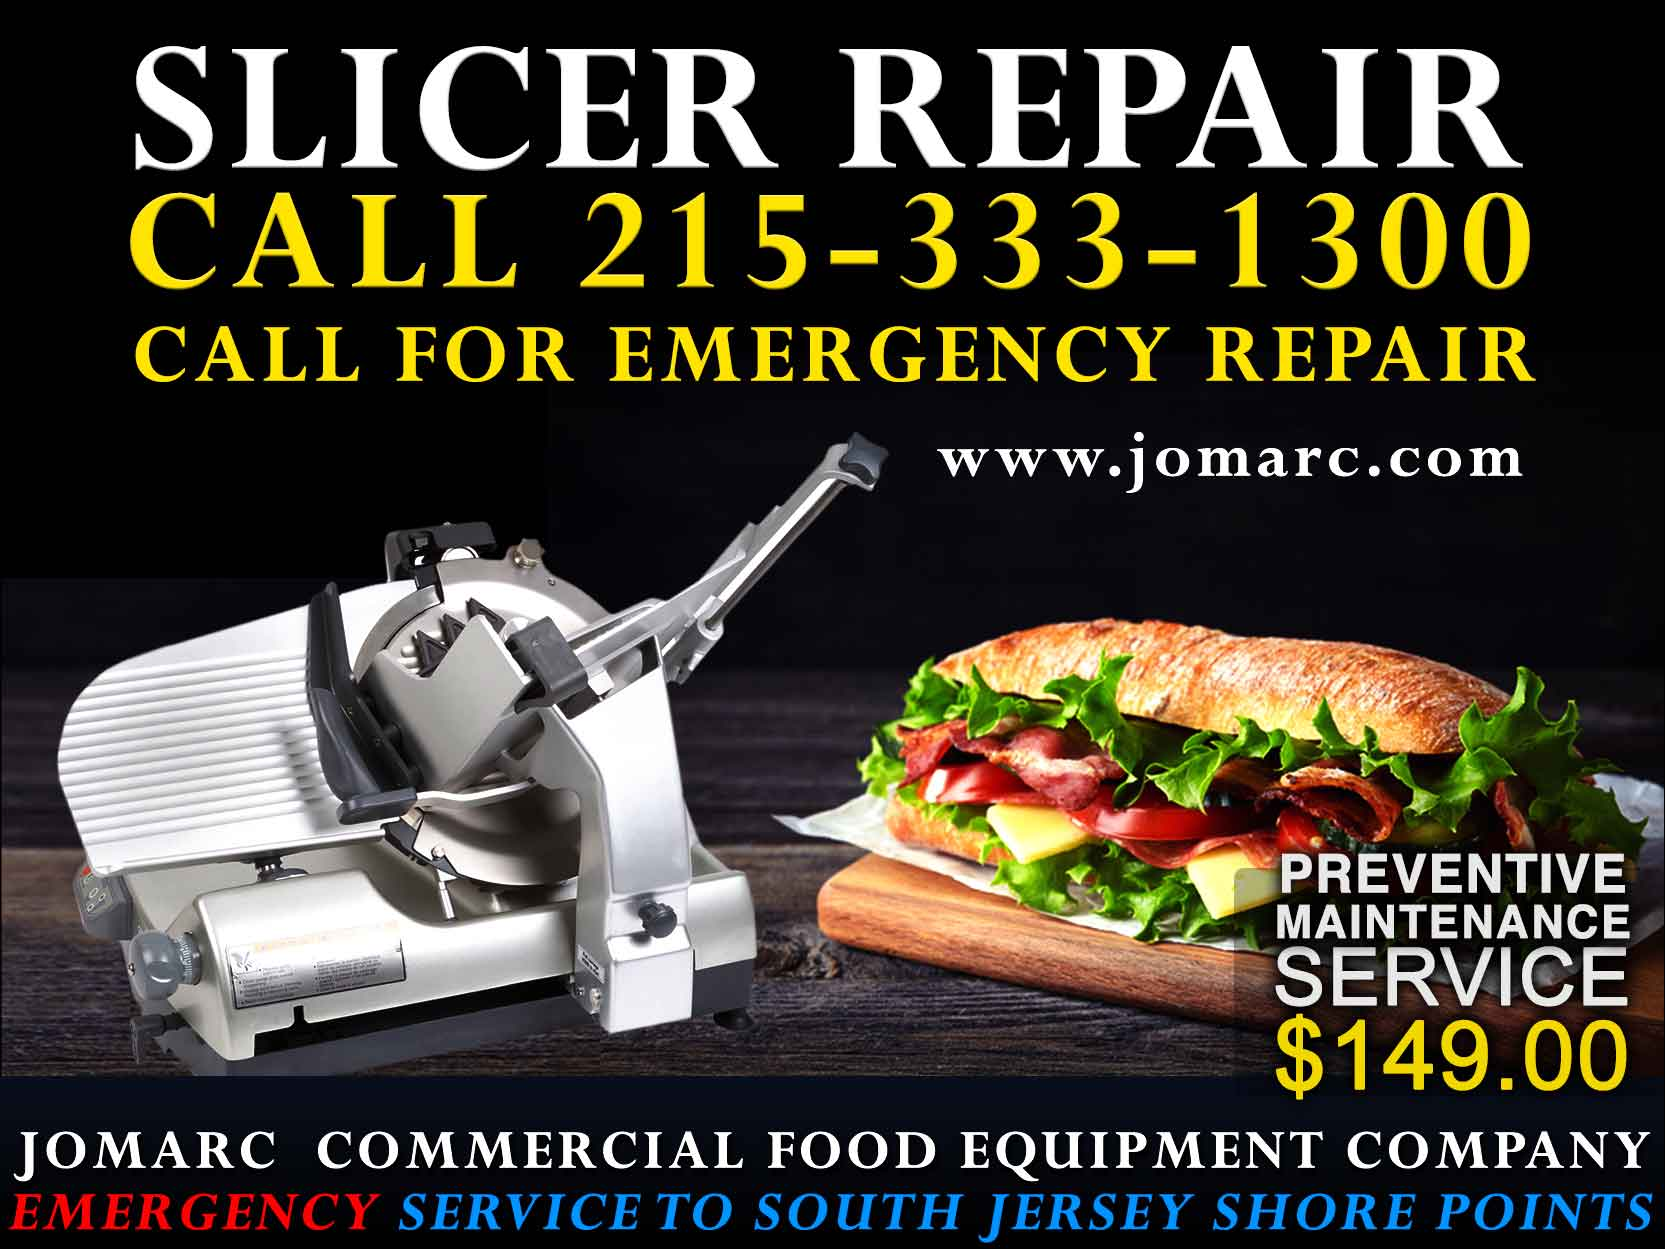 Jomarc services all brands and types of slicers. We sell used Hobart slicers. Preventative maintence is required to keep the investment you made in a commercial slider to continue to operate at maximum efficiency, your business cannot afford to have your slicer working below capacity. If you feel that your slicer is not operating at maximum efficiency, call Jomarc for our preventative Maintenance Service for light duty, medium duty and heavty dutery slicers.   Don't Wait Until your slicer breaks! We Offer PREVENTIVE MAINTENANCE SERVICE FOR COMMERICAL SLICERS for $149.00